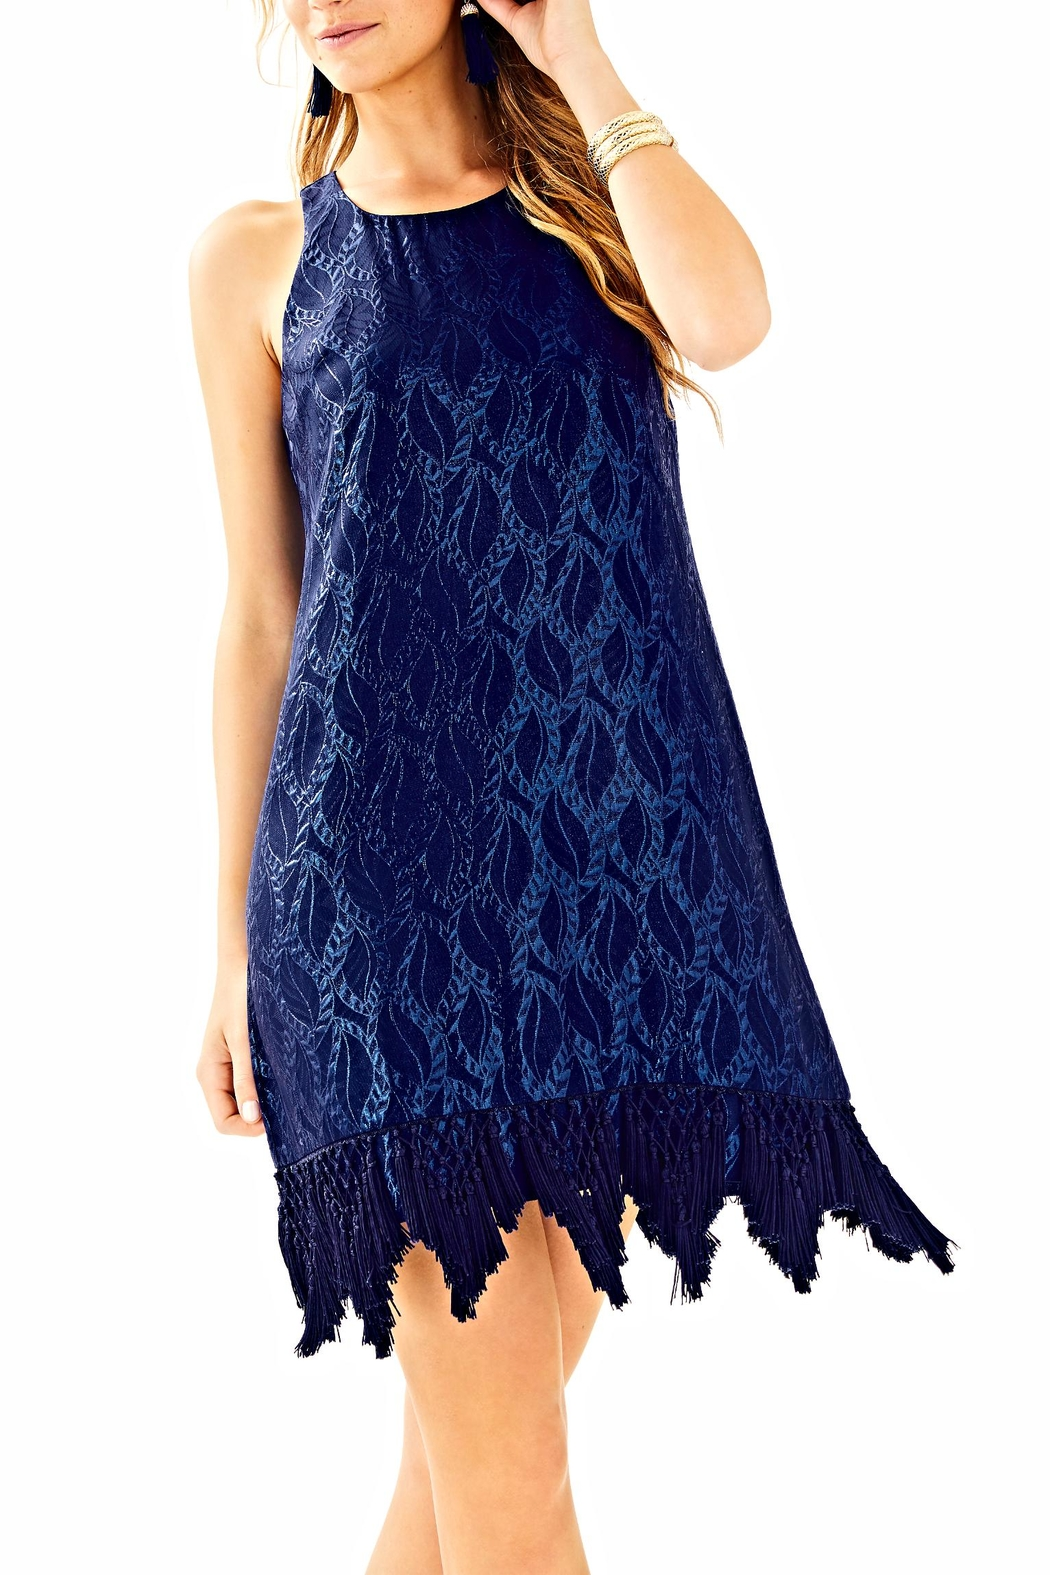 Lilly Pulitzer Marquette Shift Dress - Main Image